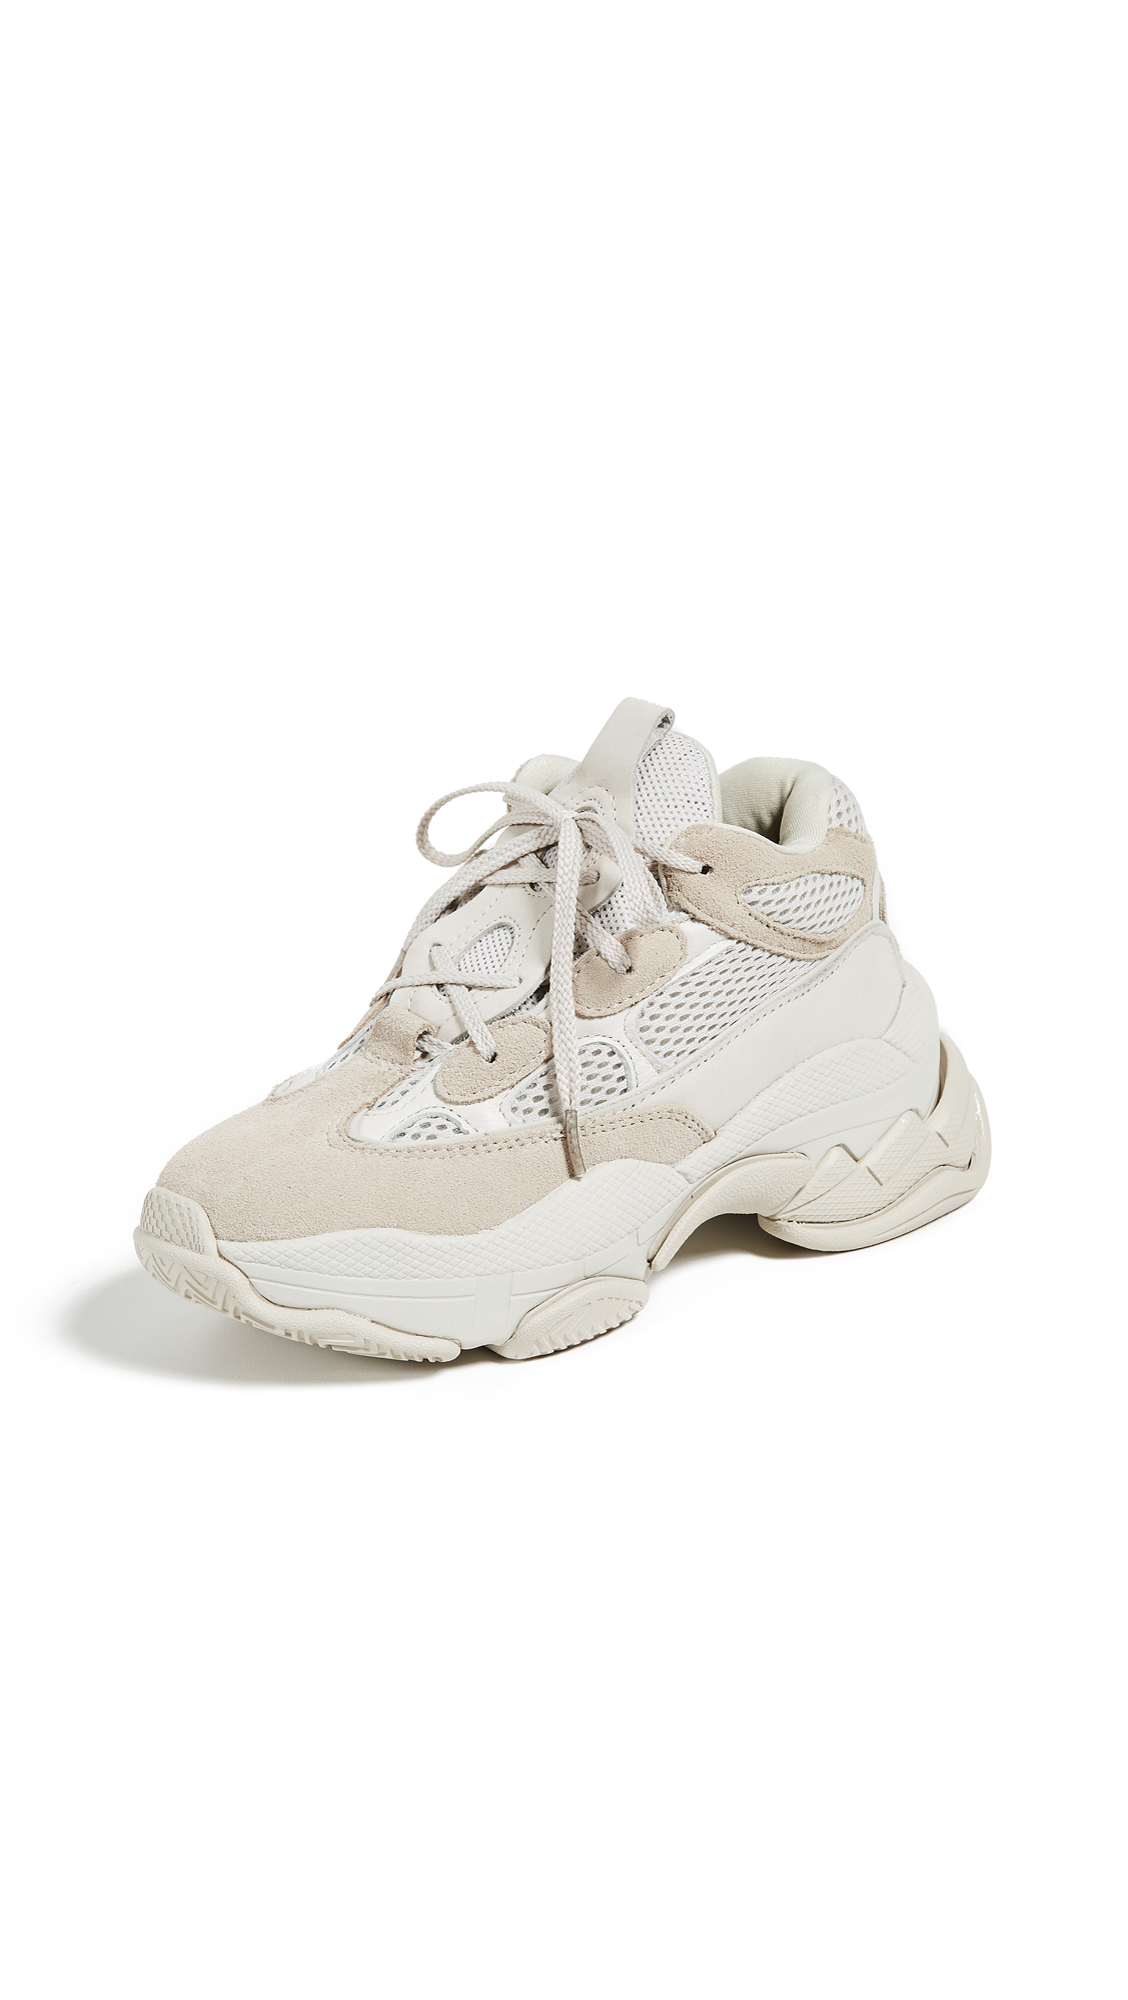 Photo of Jeffrey Campbell Hotline Dad Sneakers online shoes sales